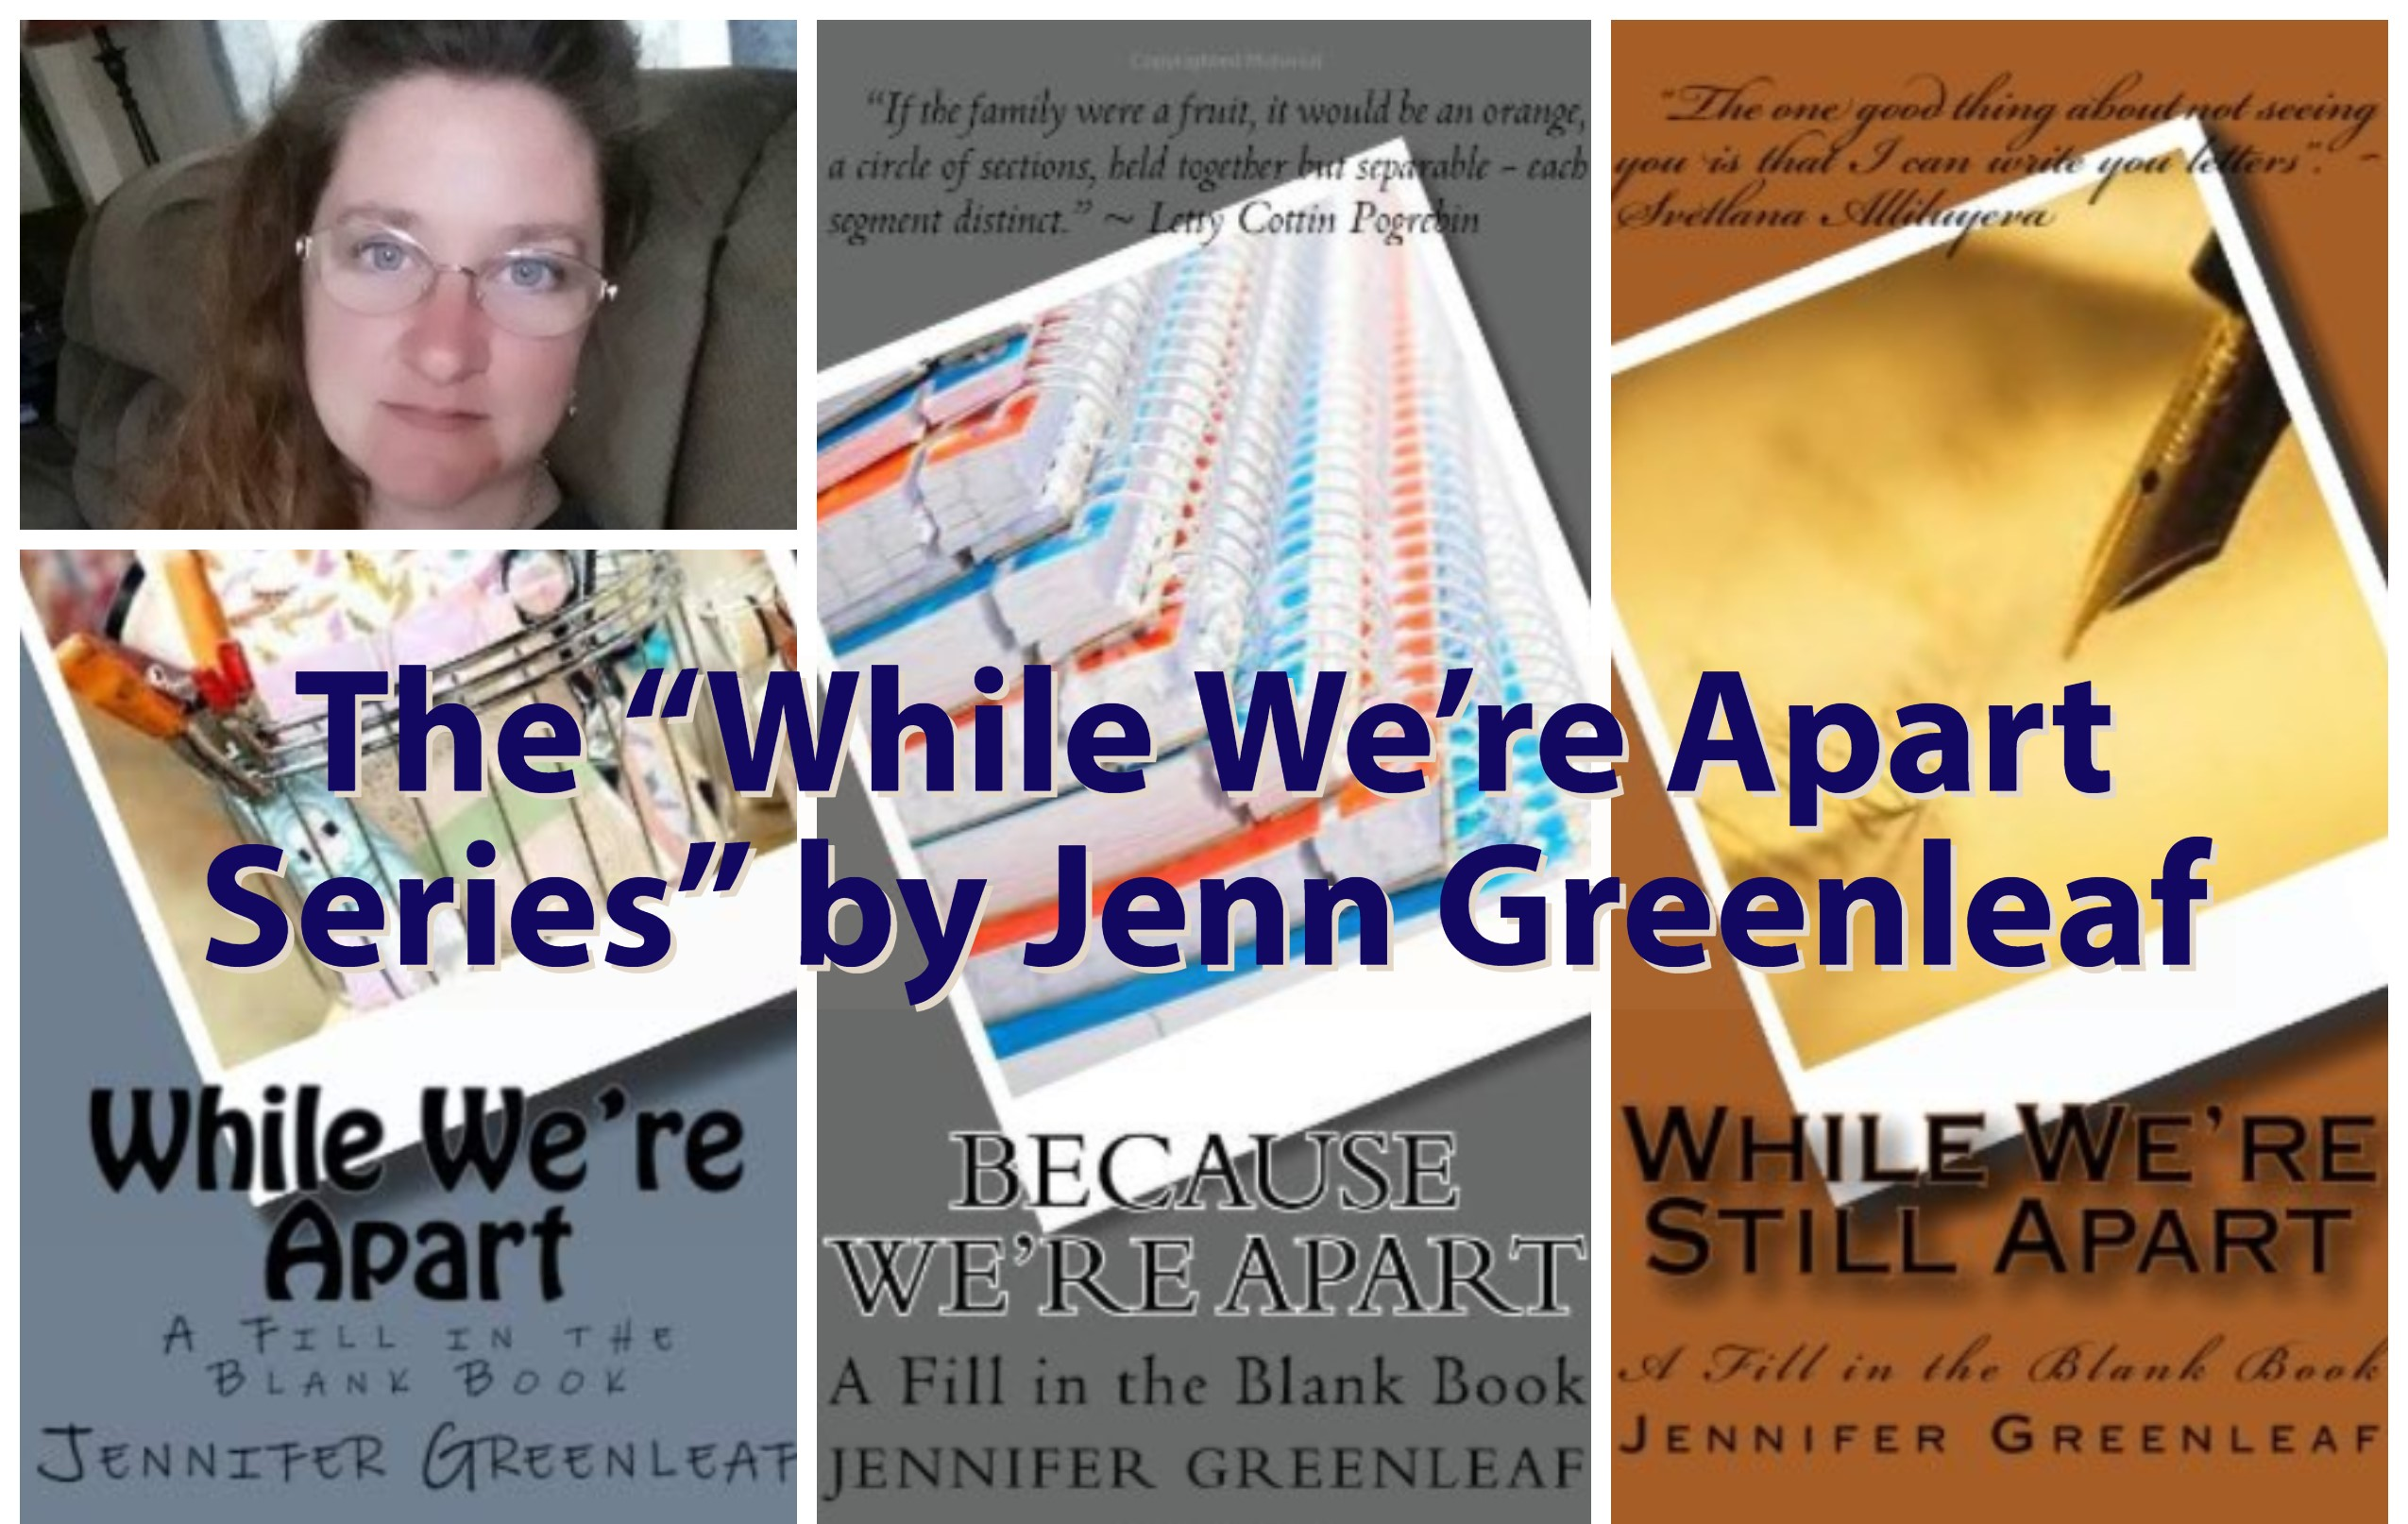 The While We're Apart Series by Jennifer Greenleaf